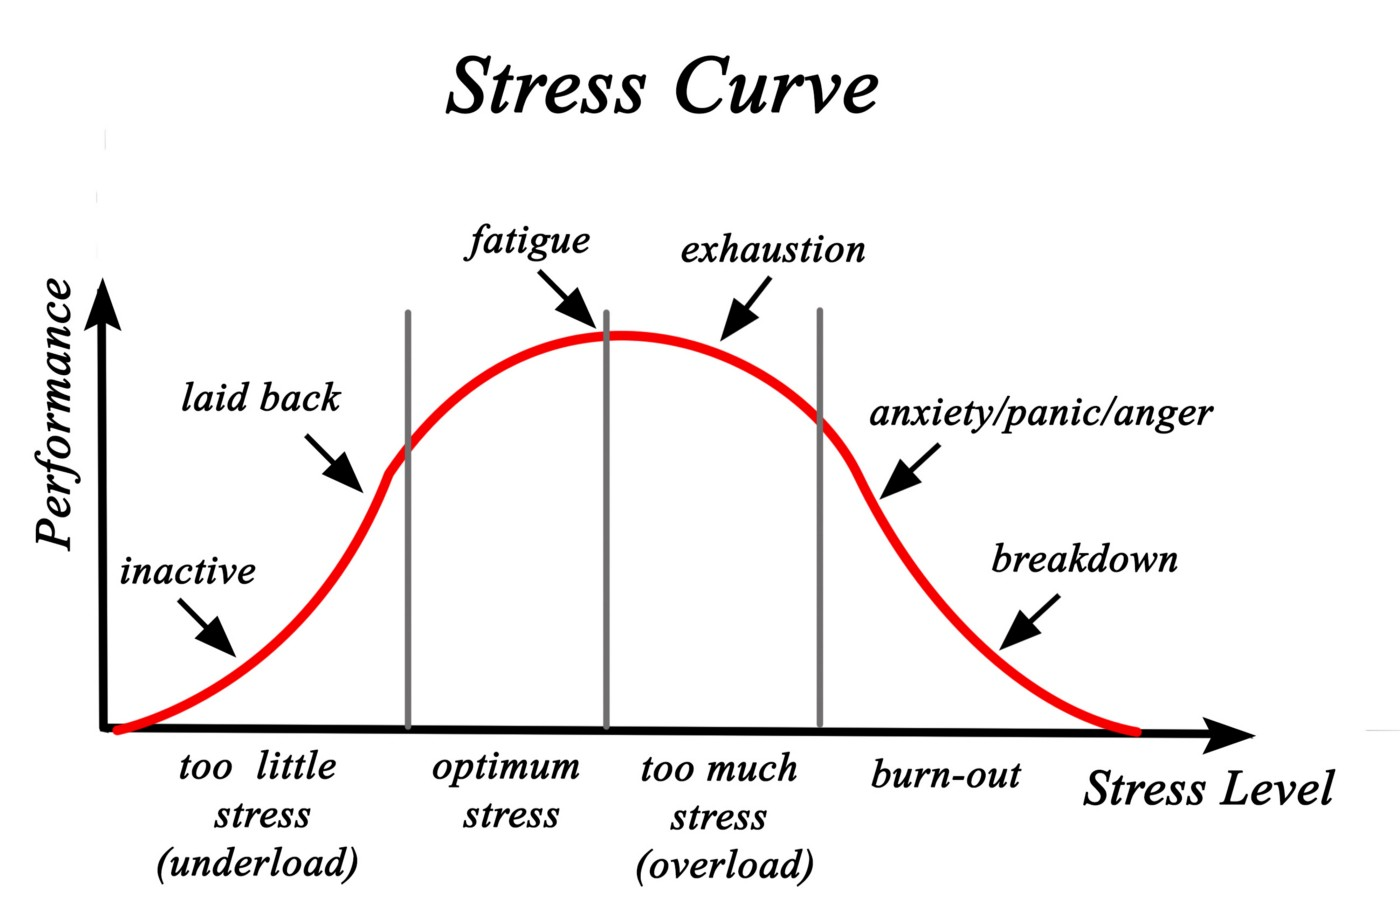 Graph showing the Stress and Performance Curve with different stages randing from inactive, laid back, fatugue, exhaustion, anxiety/panic/anger, and breakdown.